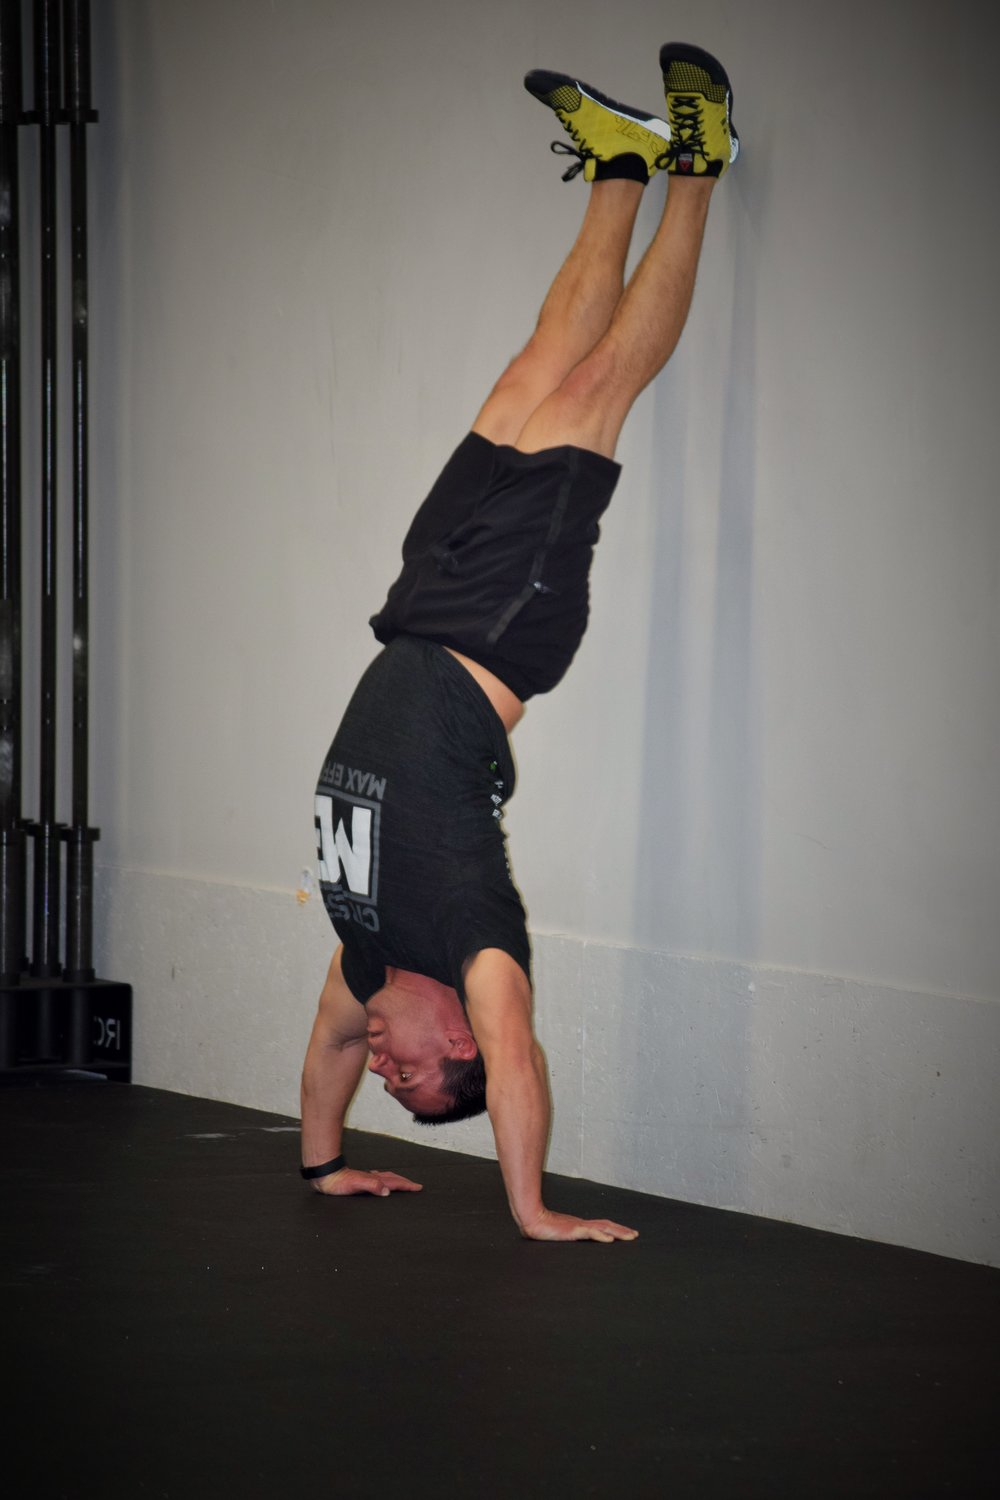 Dan doing a handstand push-up